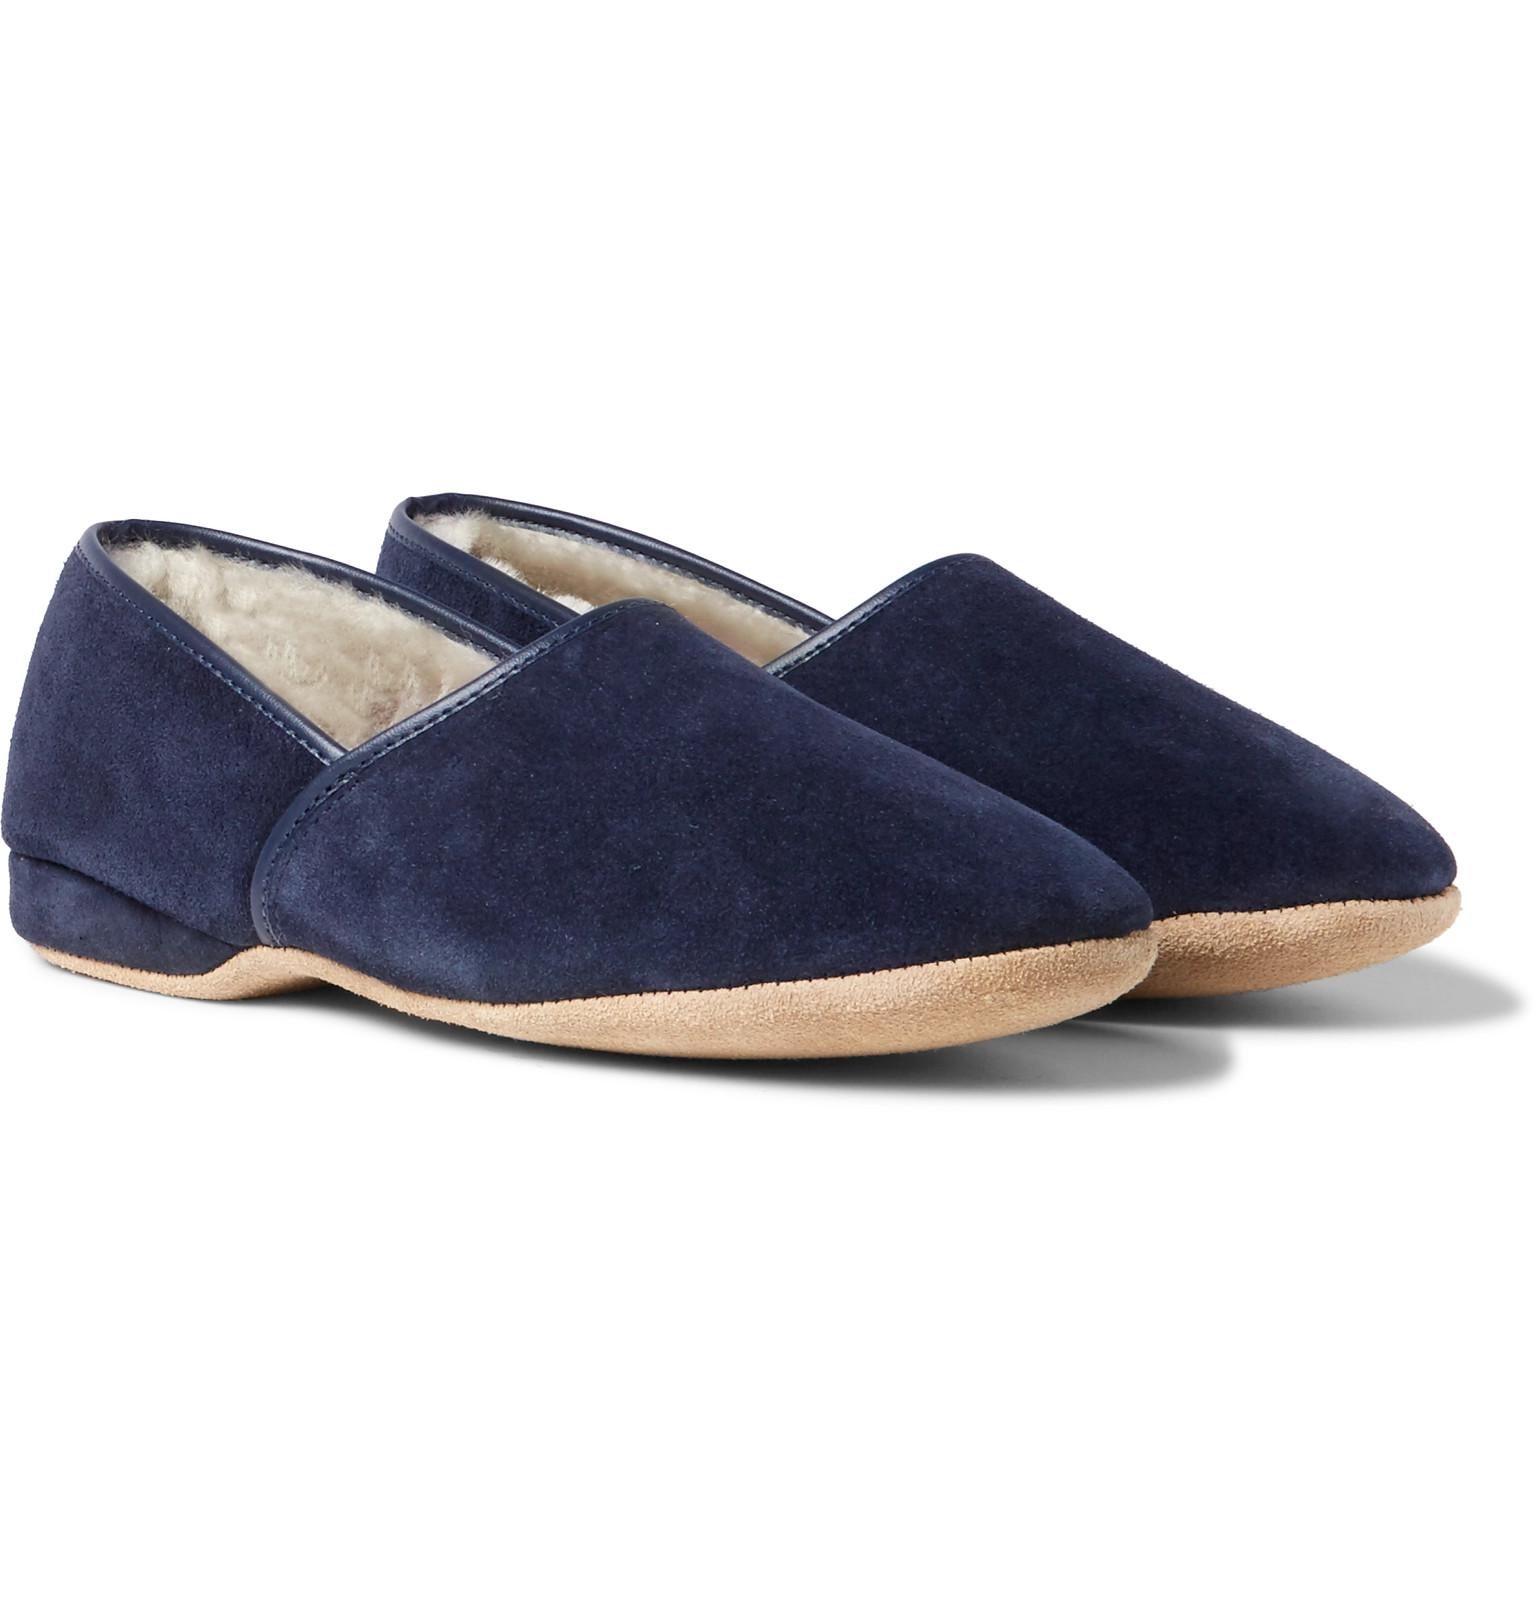 Crawford Shearling-lined Suede Slippers Derek Rose Latest Cheap Price Outlet Fast Delivery Pre Order bywERD